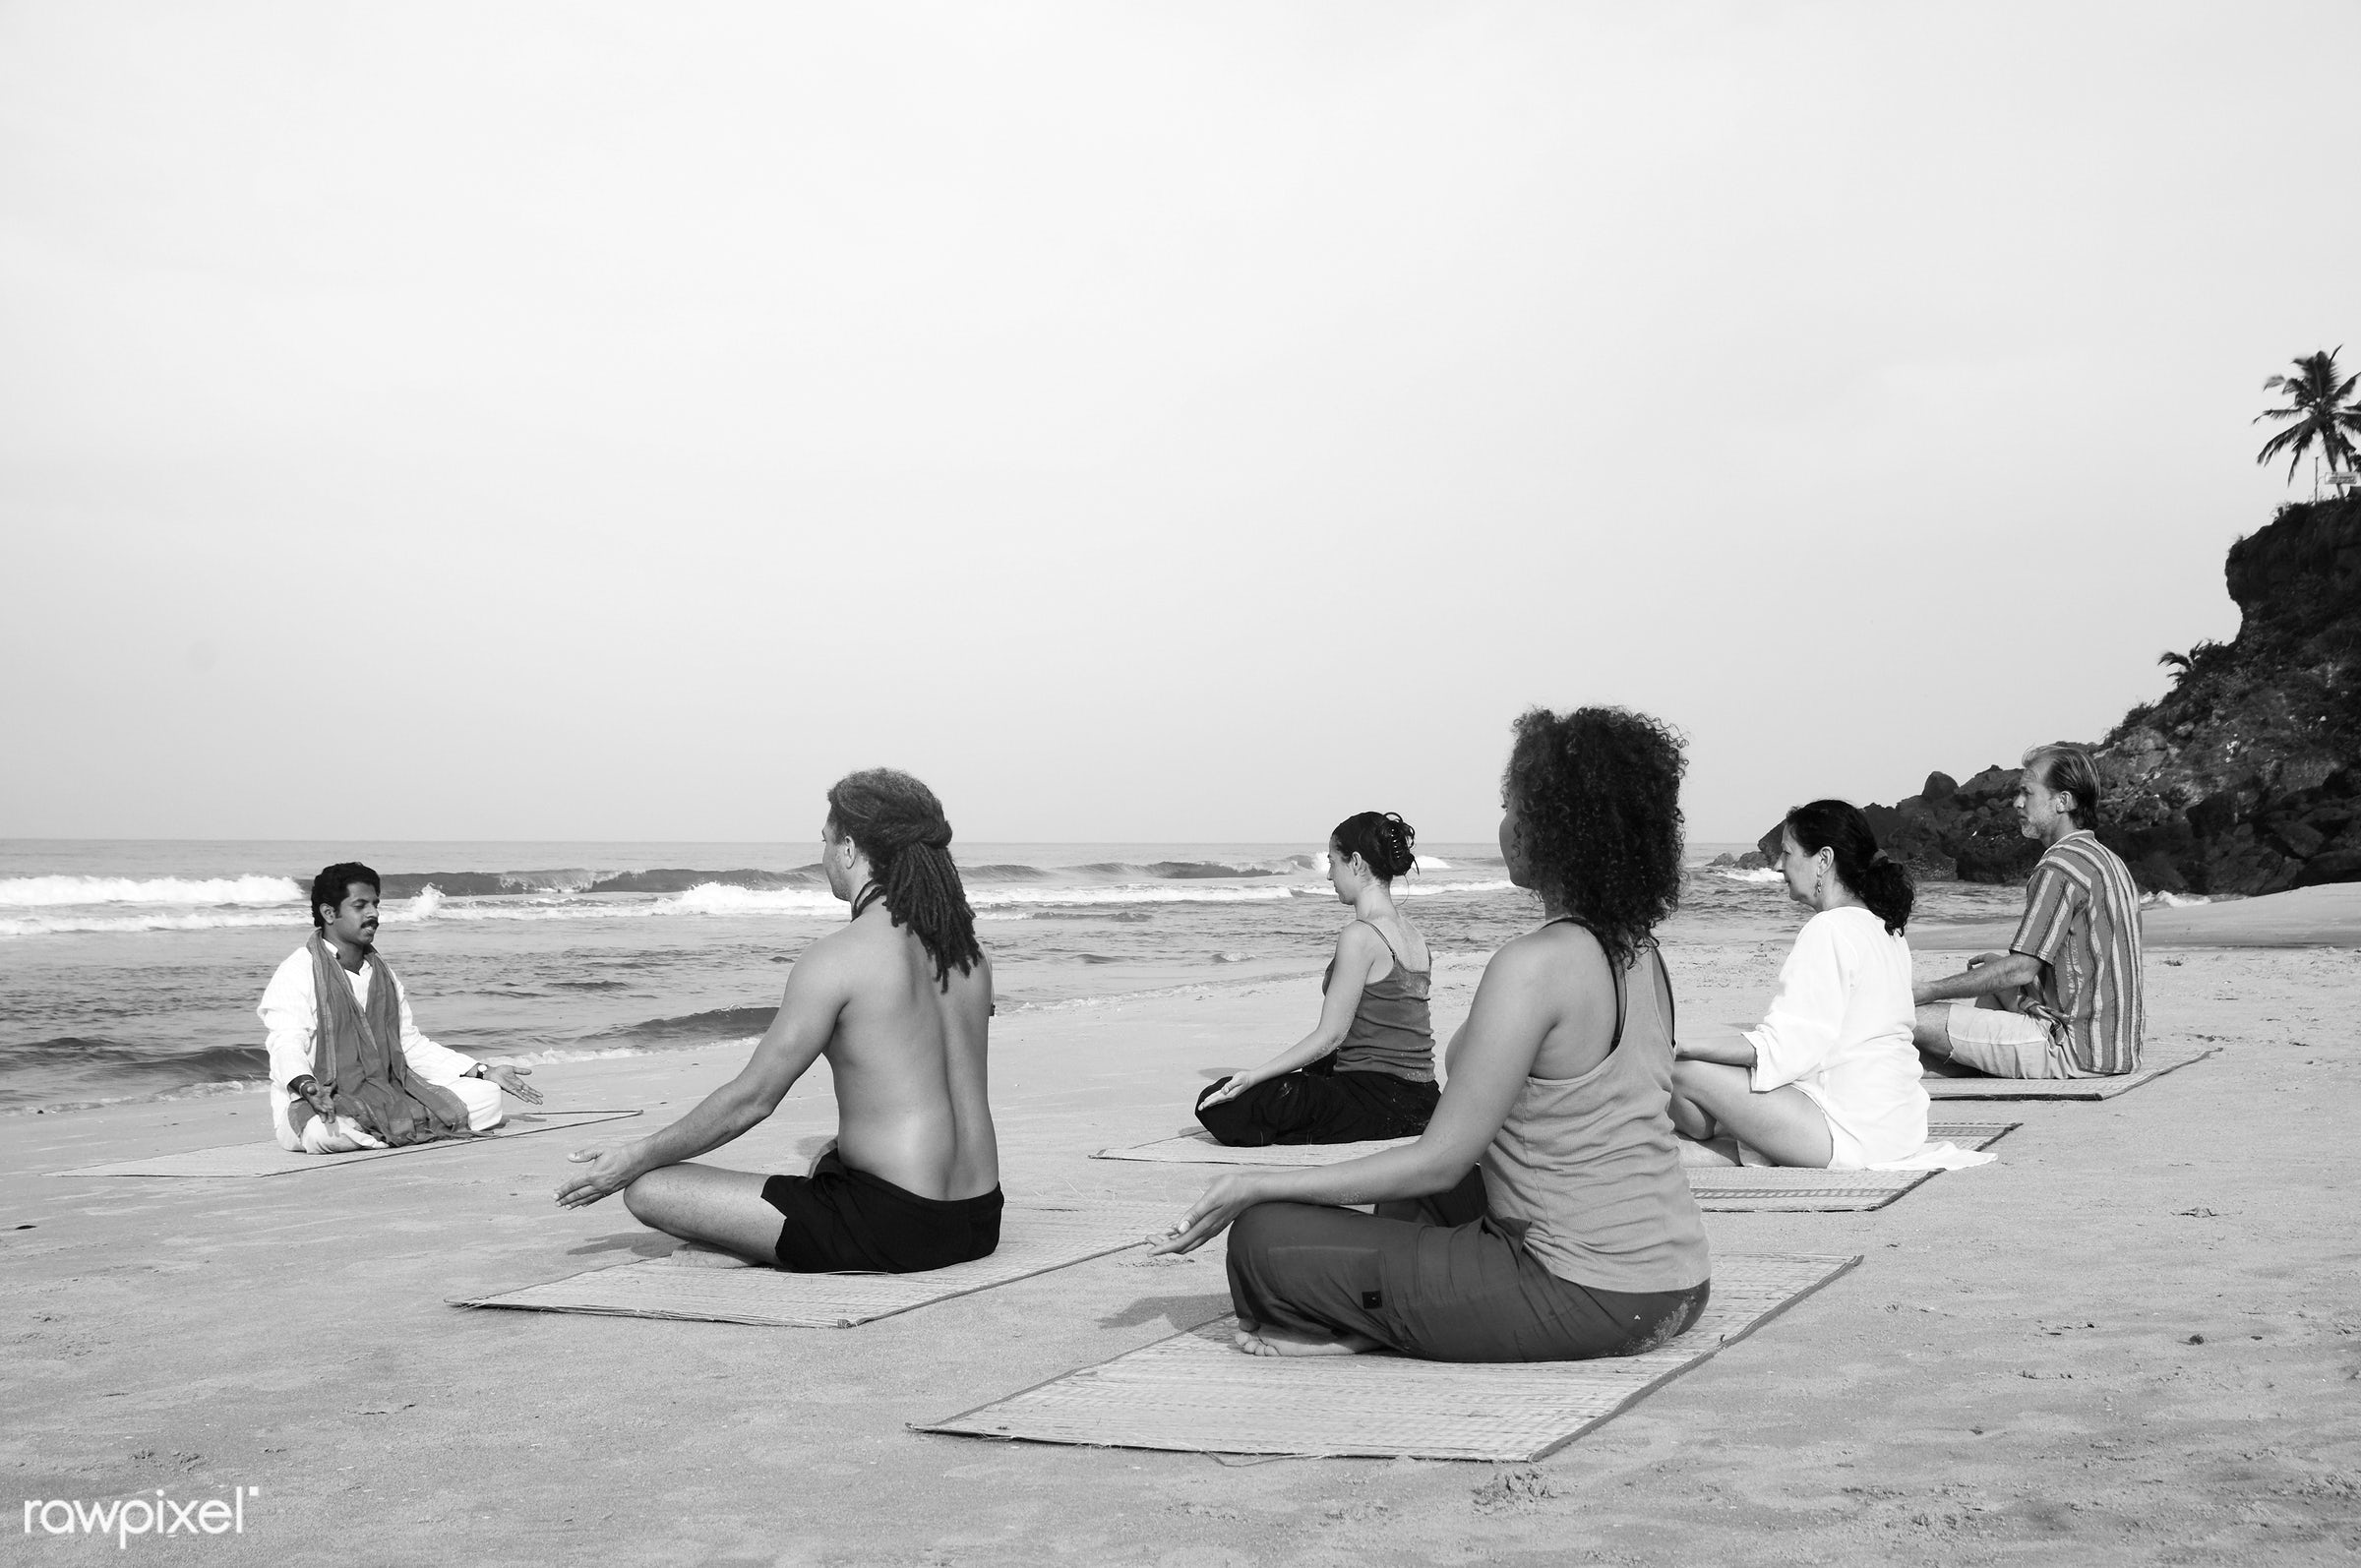 Yoga class by the beach - activity, adult, arms raised, beach, beauty in nature, body, body care, casual, class, coastline,...